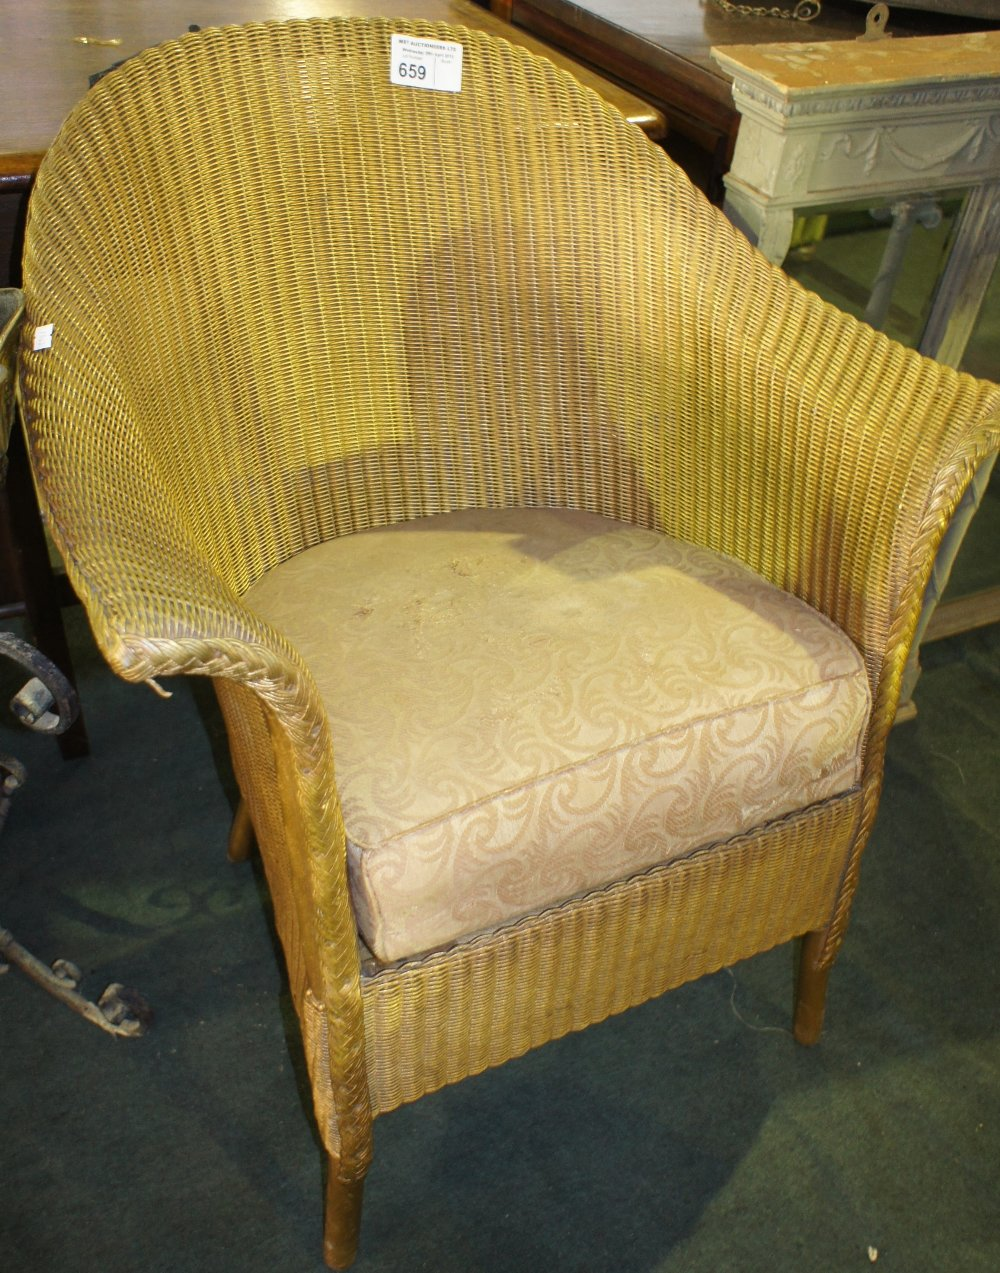 Lot 659 - NV- a gilt painted Lloyd Loom conservatory chair